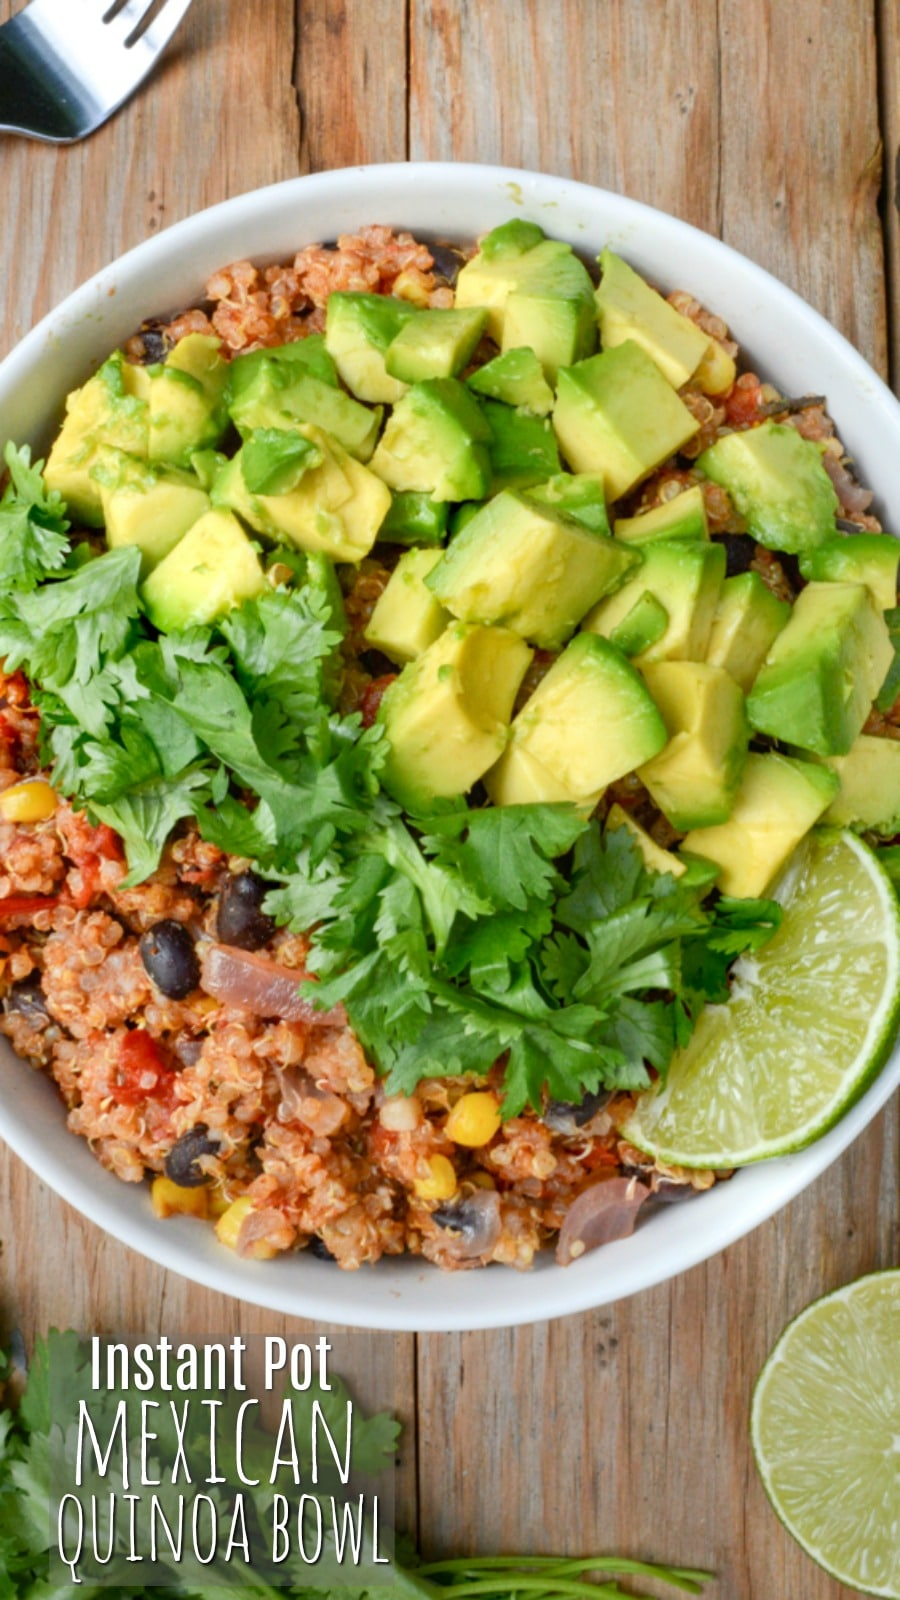 Instant Pot Mexican quinoa bowl topped with cilantro and diced avocado.